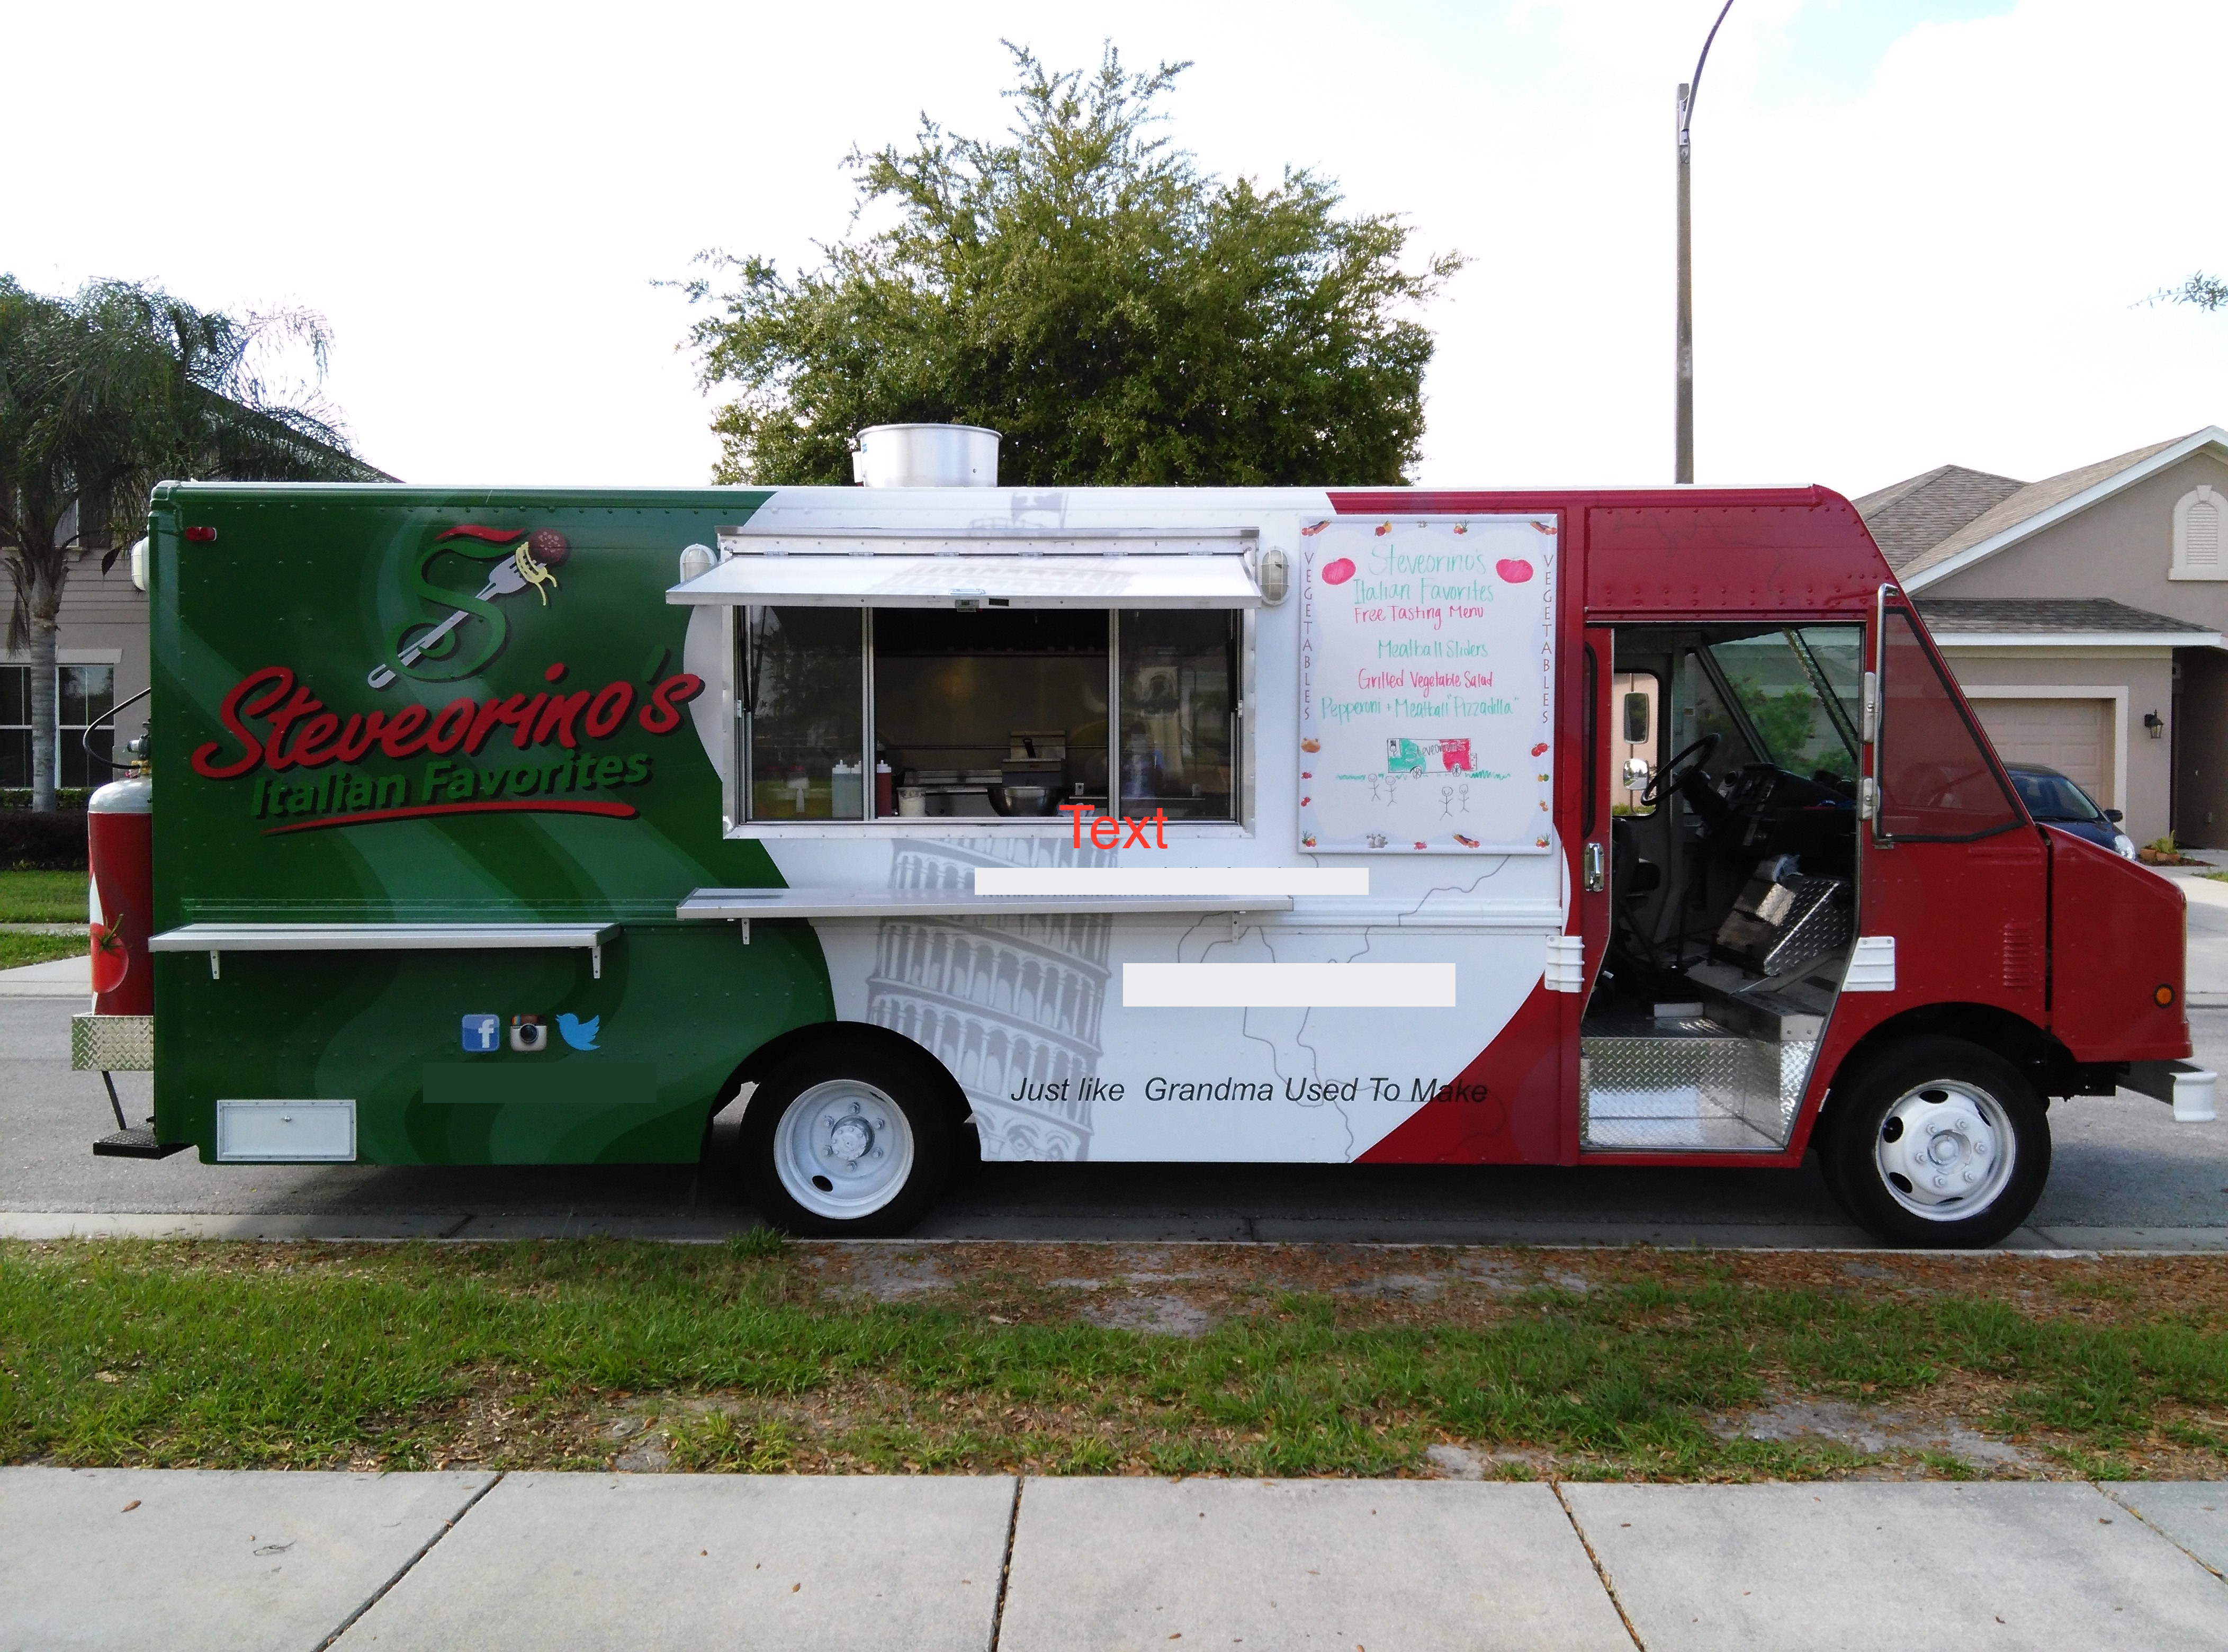 Food Trucks For Sale Near Me >> Tampa Area Food Trucks For Sale | Tampa Bay Food Trucks